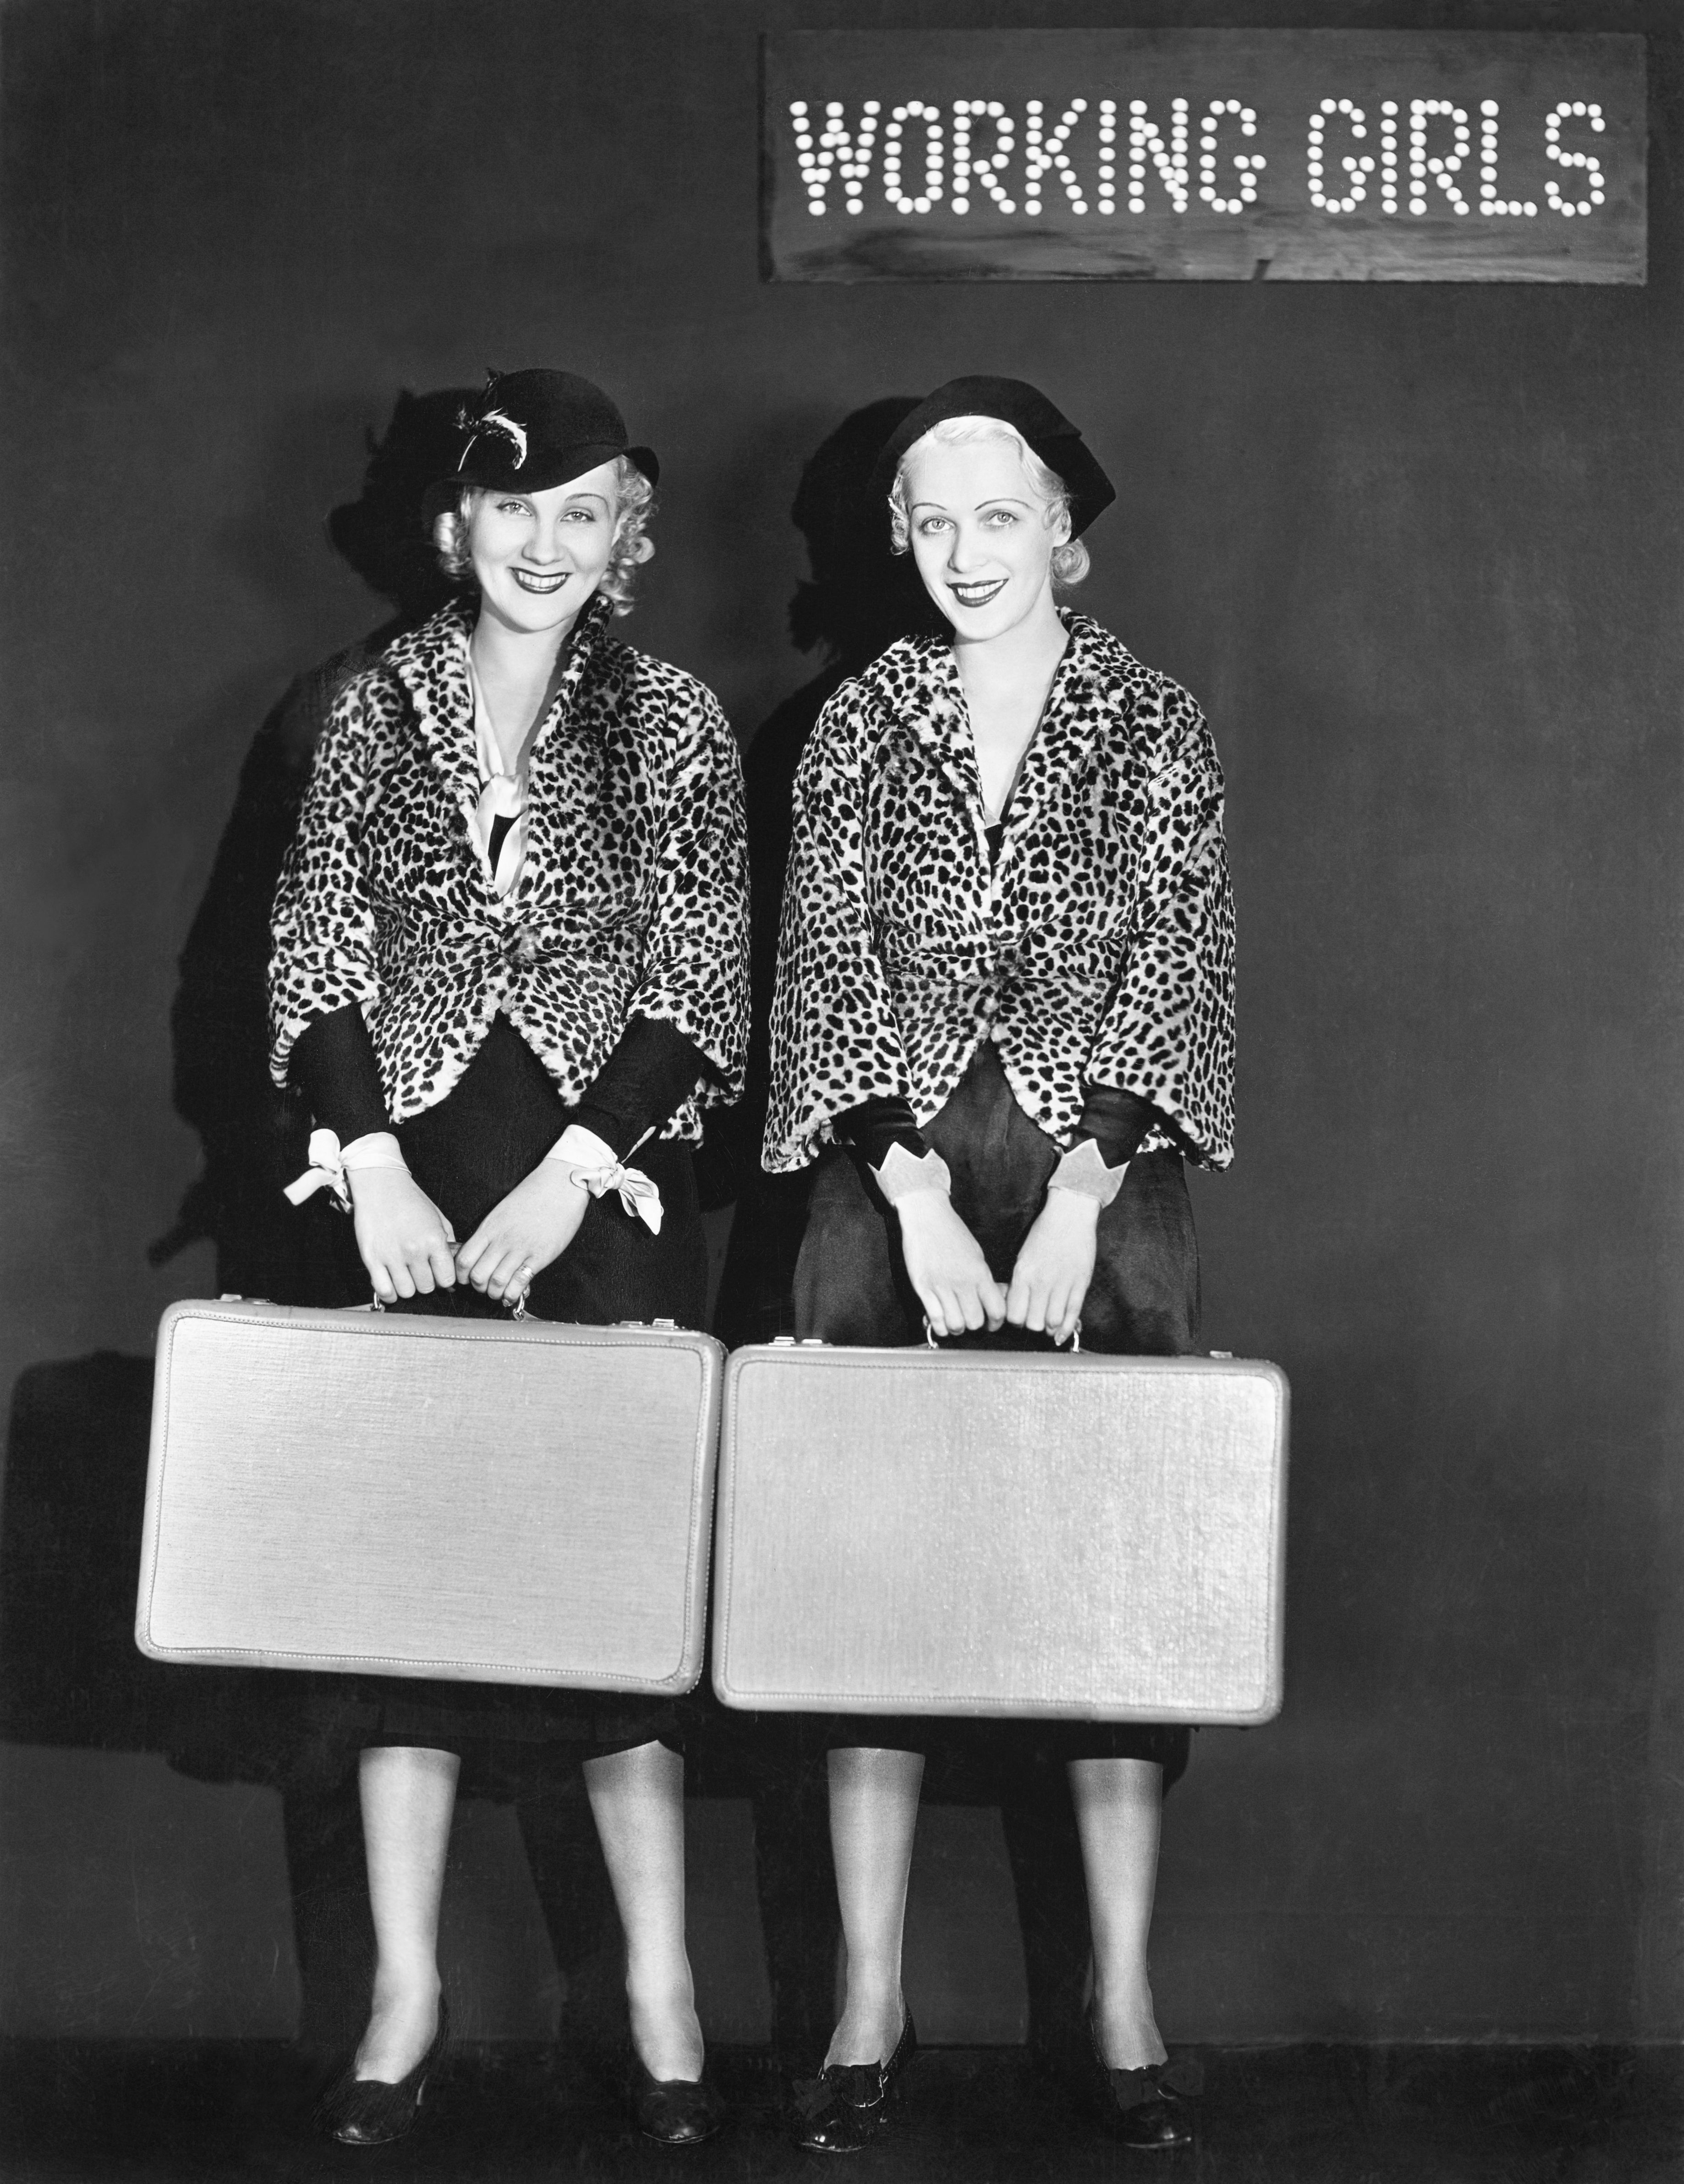 Portrait of two air hostess holding suitcases and smiling